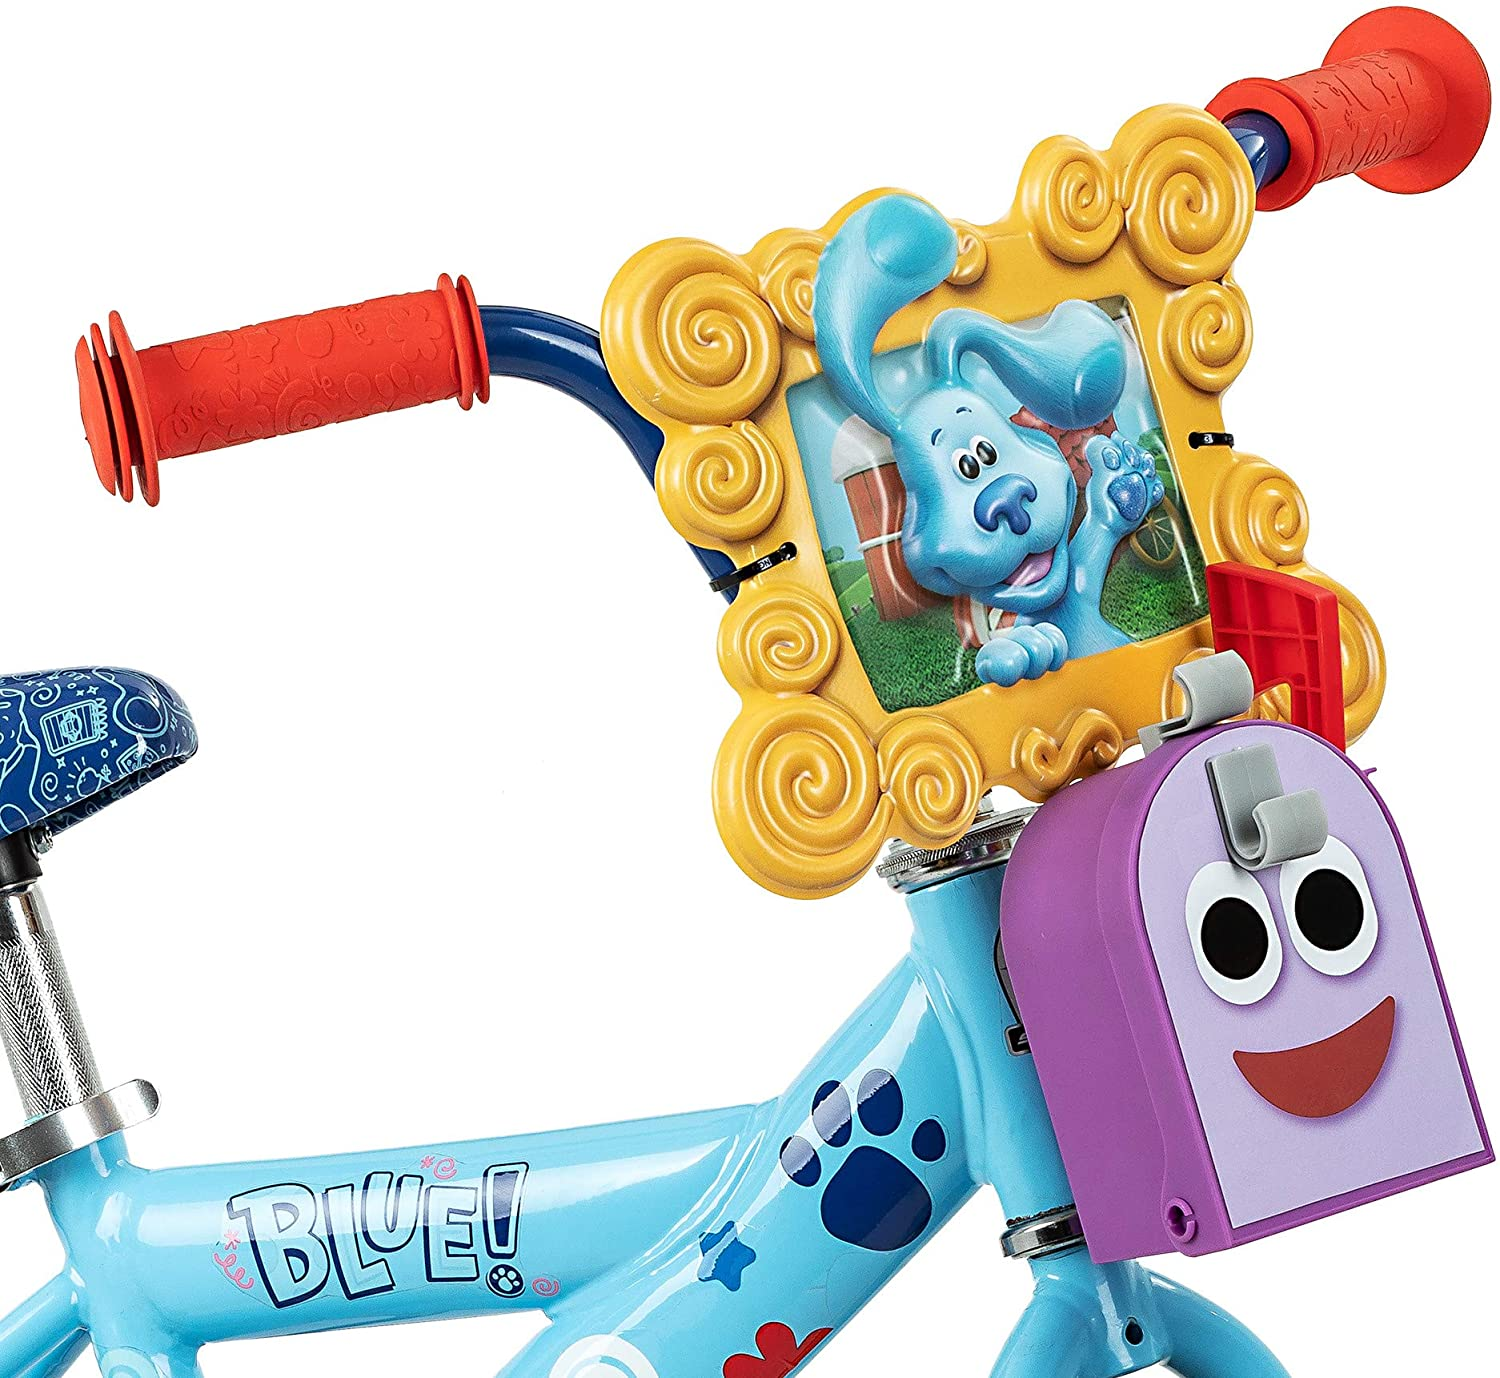 Training Wheels Included Nickelodeon Blues Clues /& You Kids Bike Ages 2-4 Year Old 12-Inch Wheels Blue